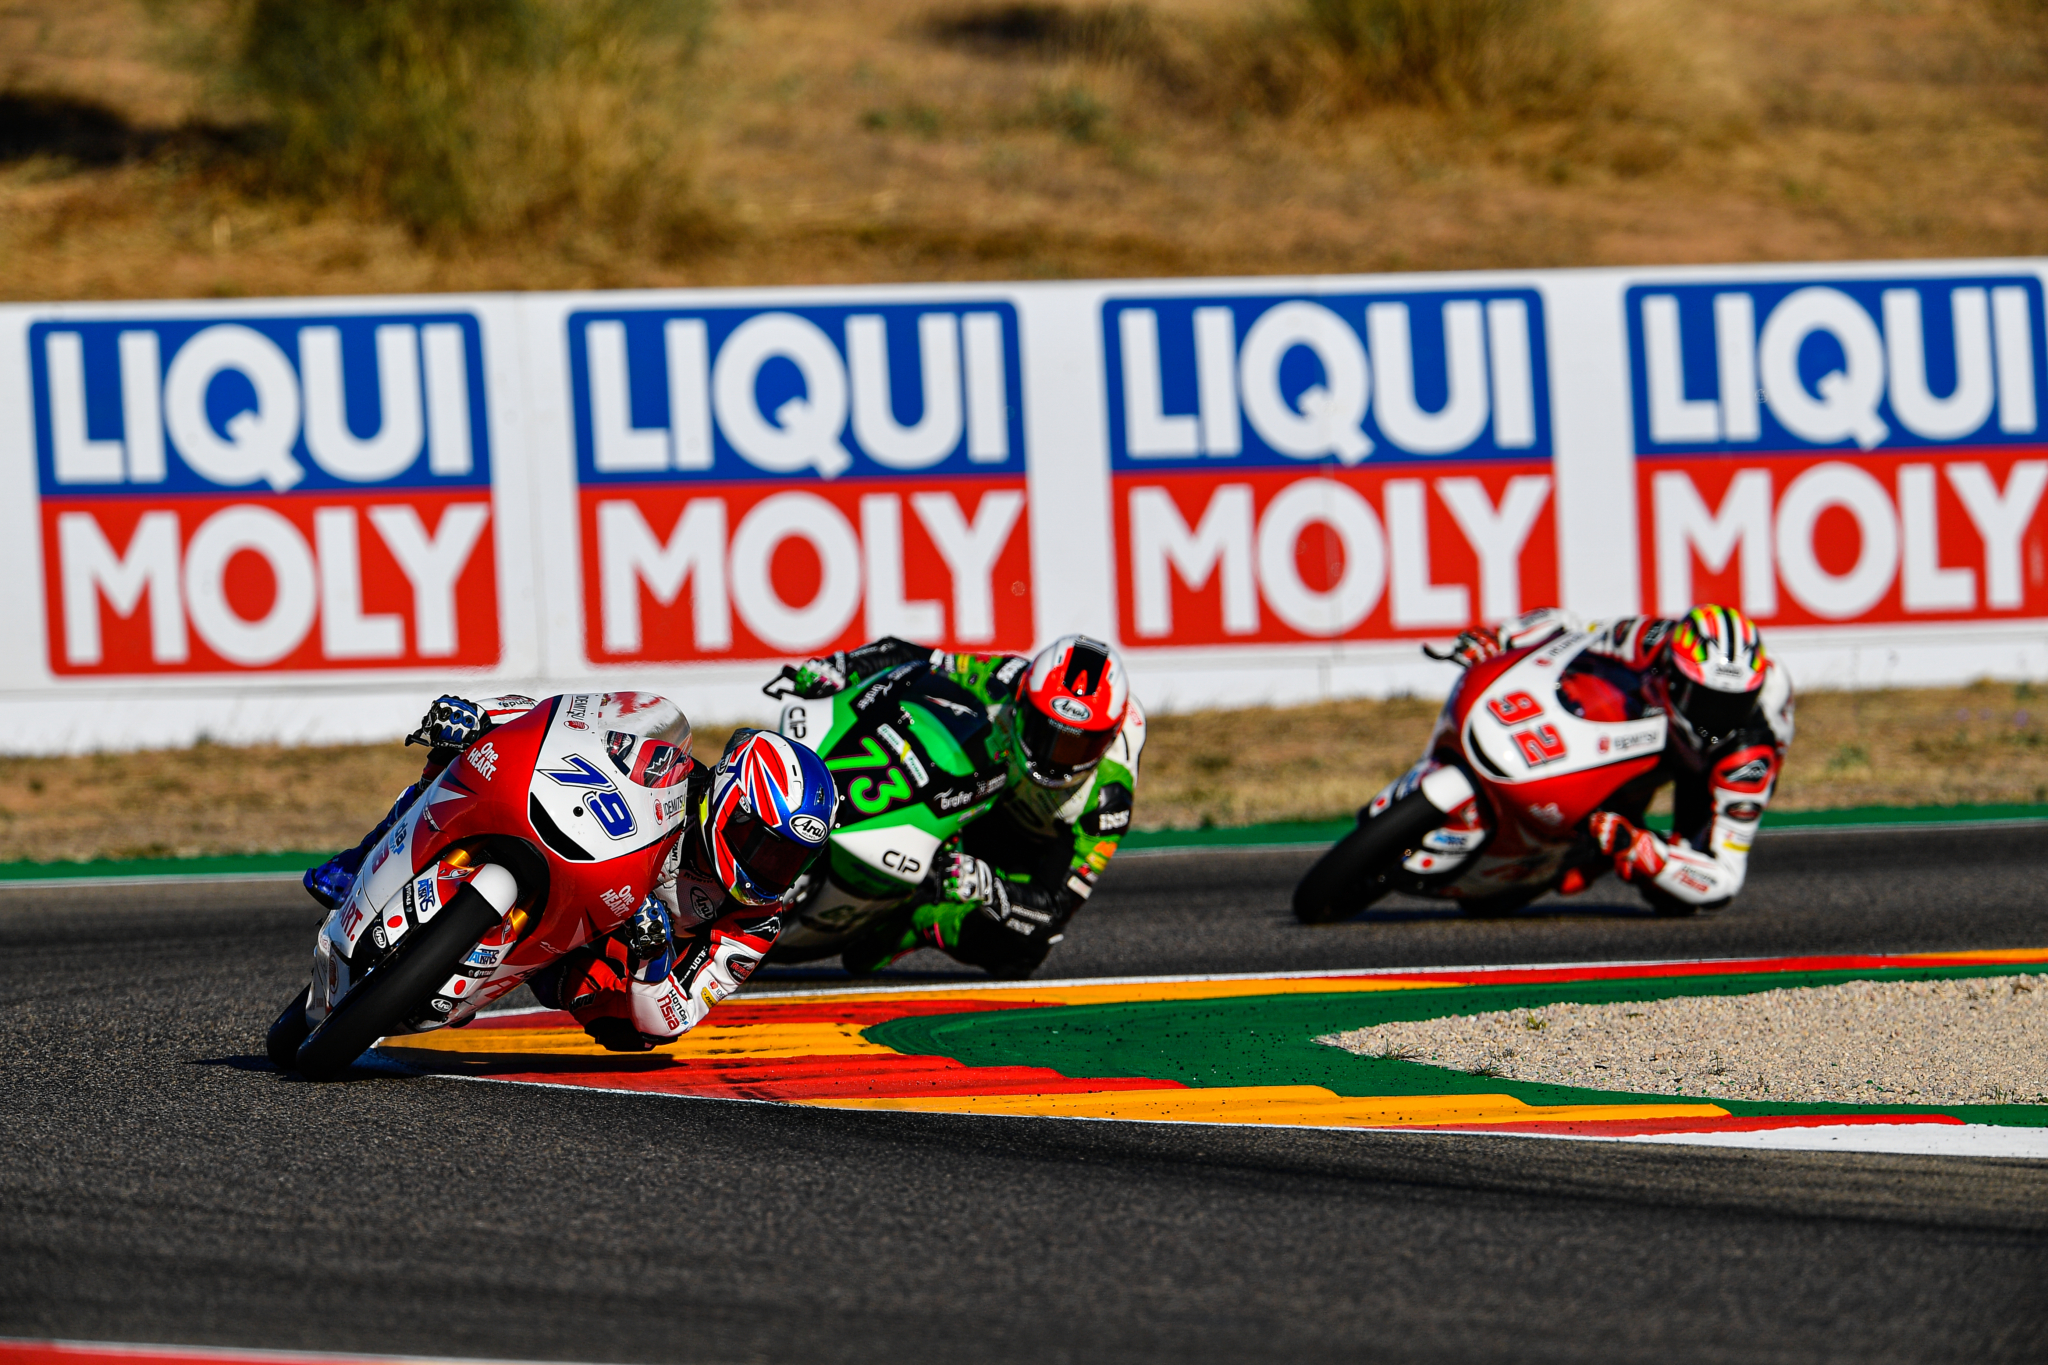 Liqui Moly becomes title sponsor of the MotoGP race in Germany